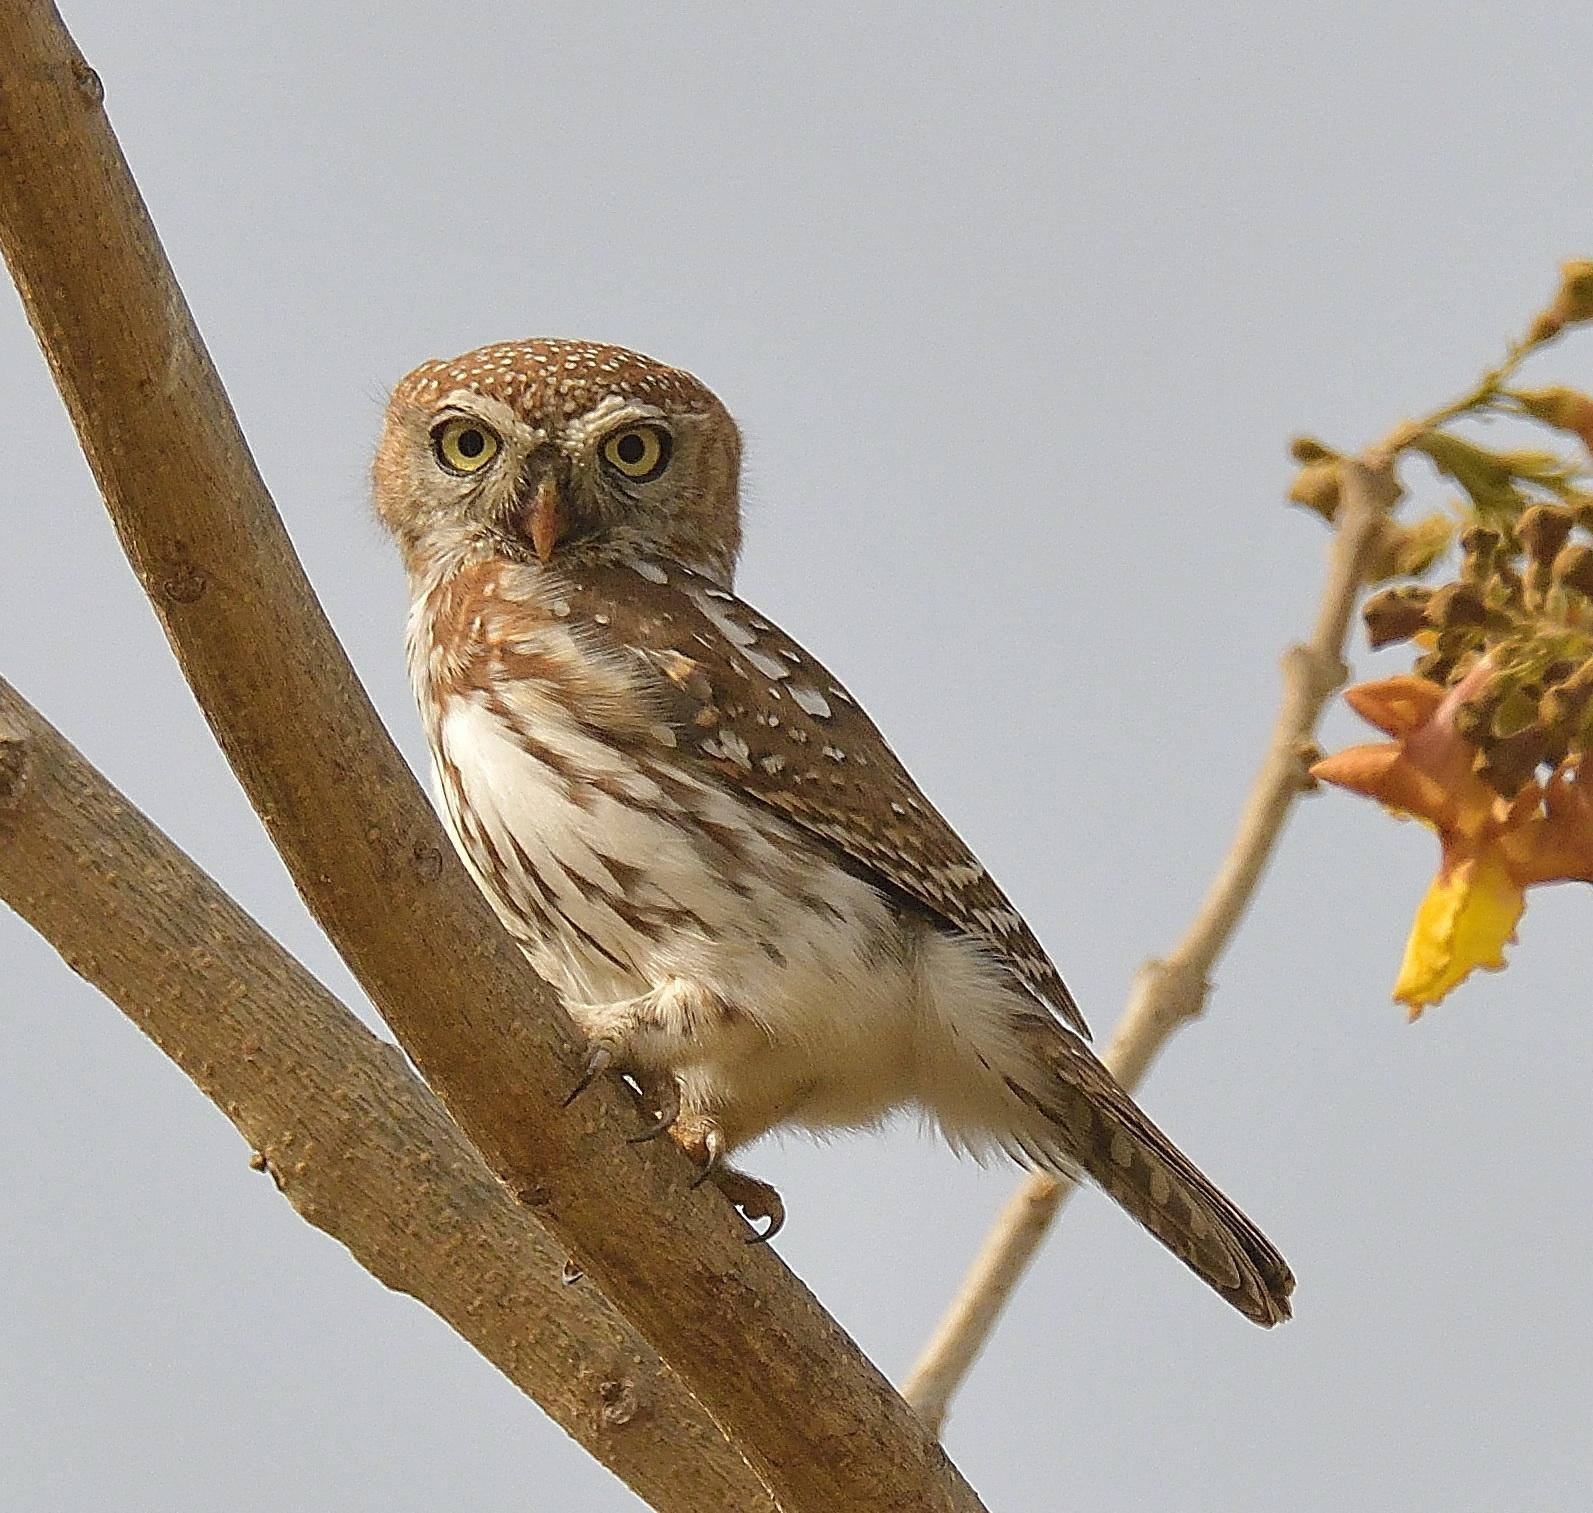 Pearl Spotted Owlet. Photo: Ton Bos